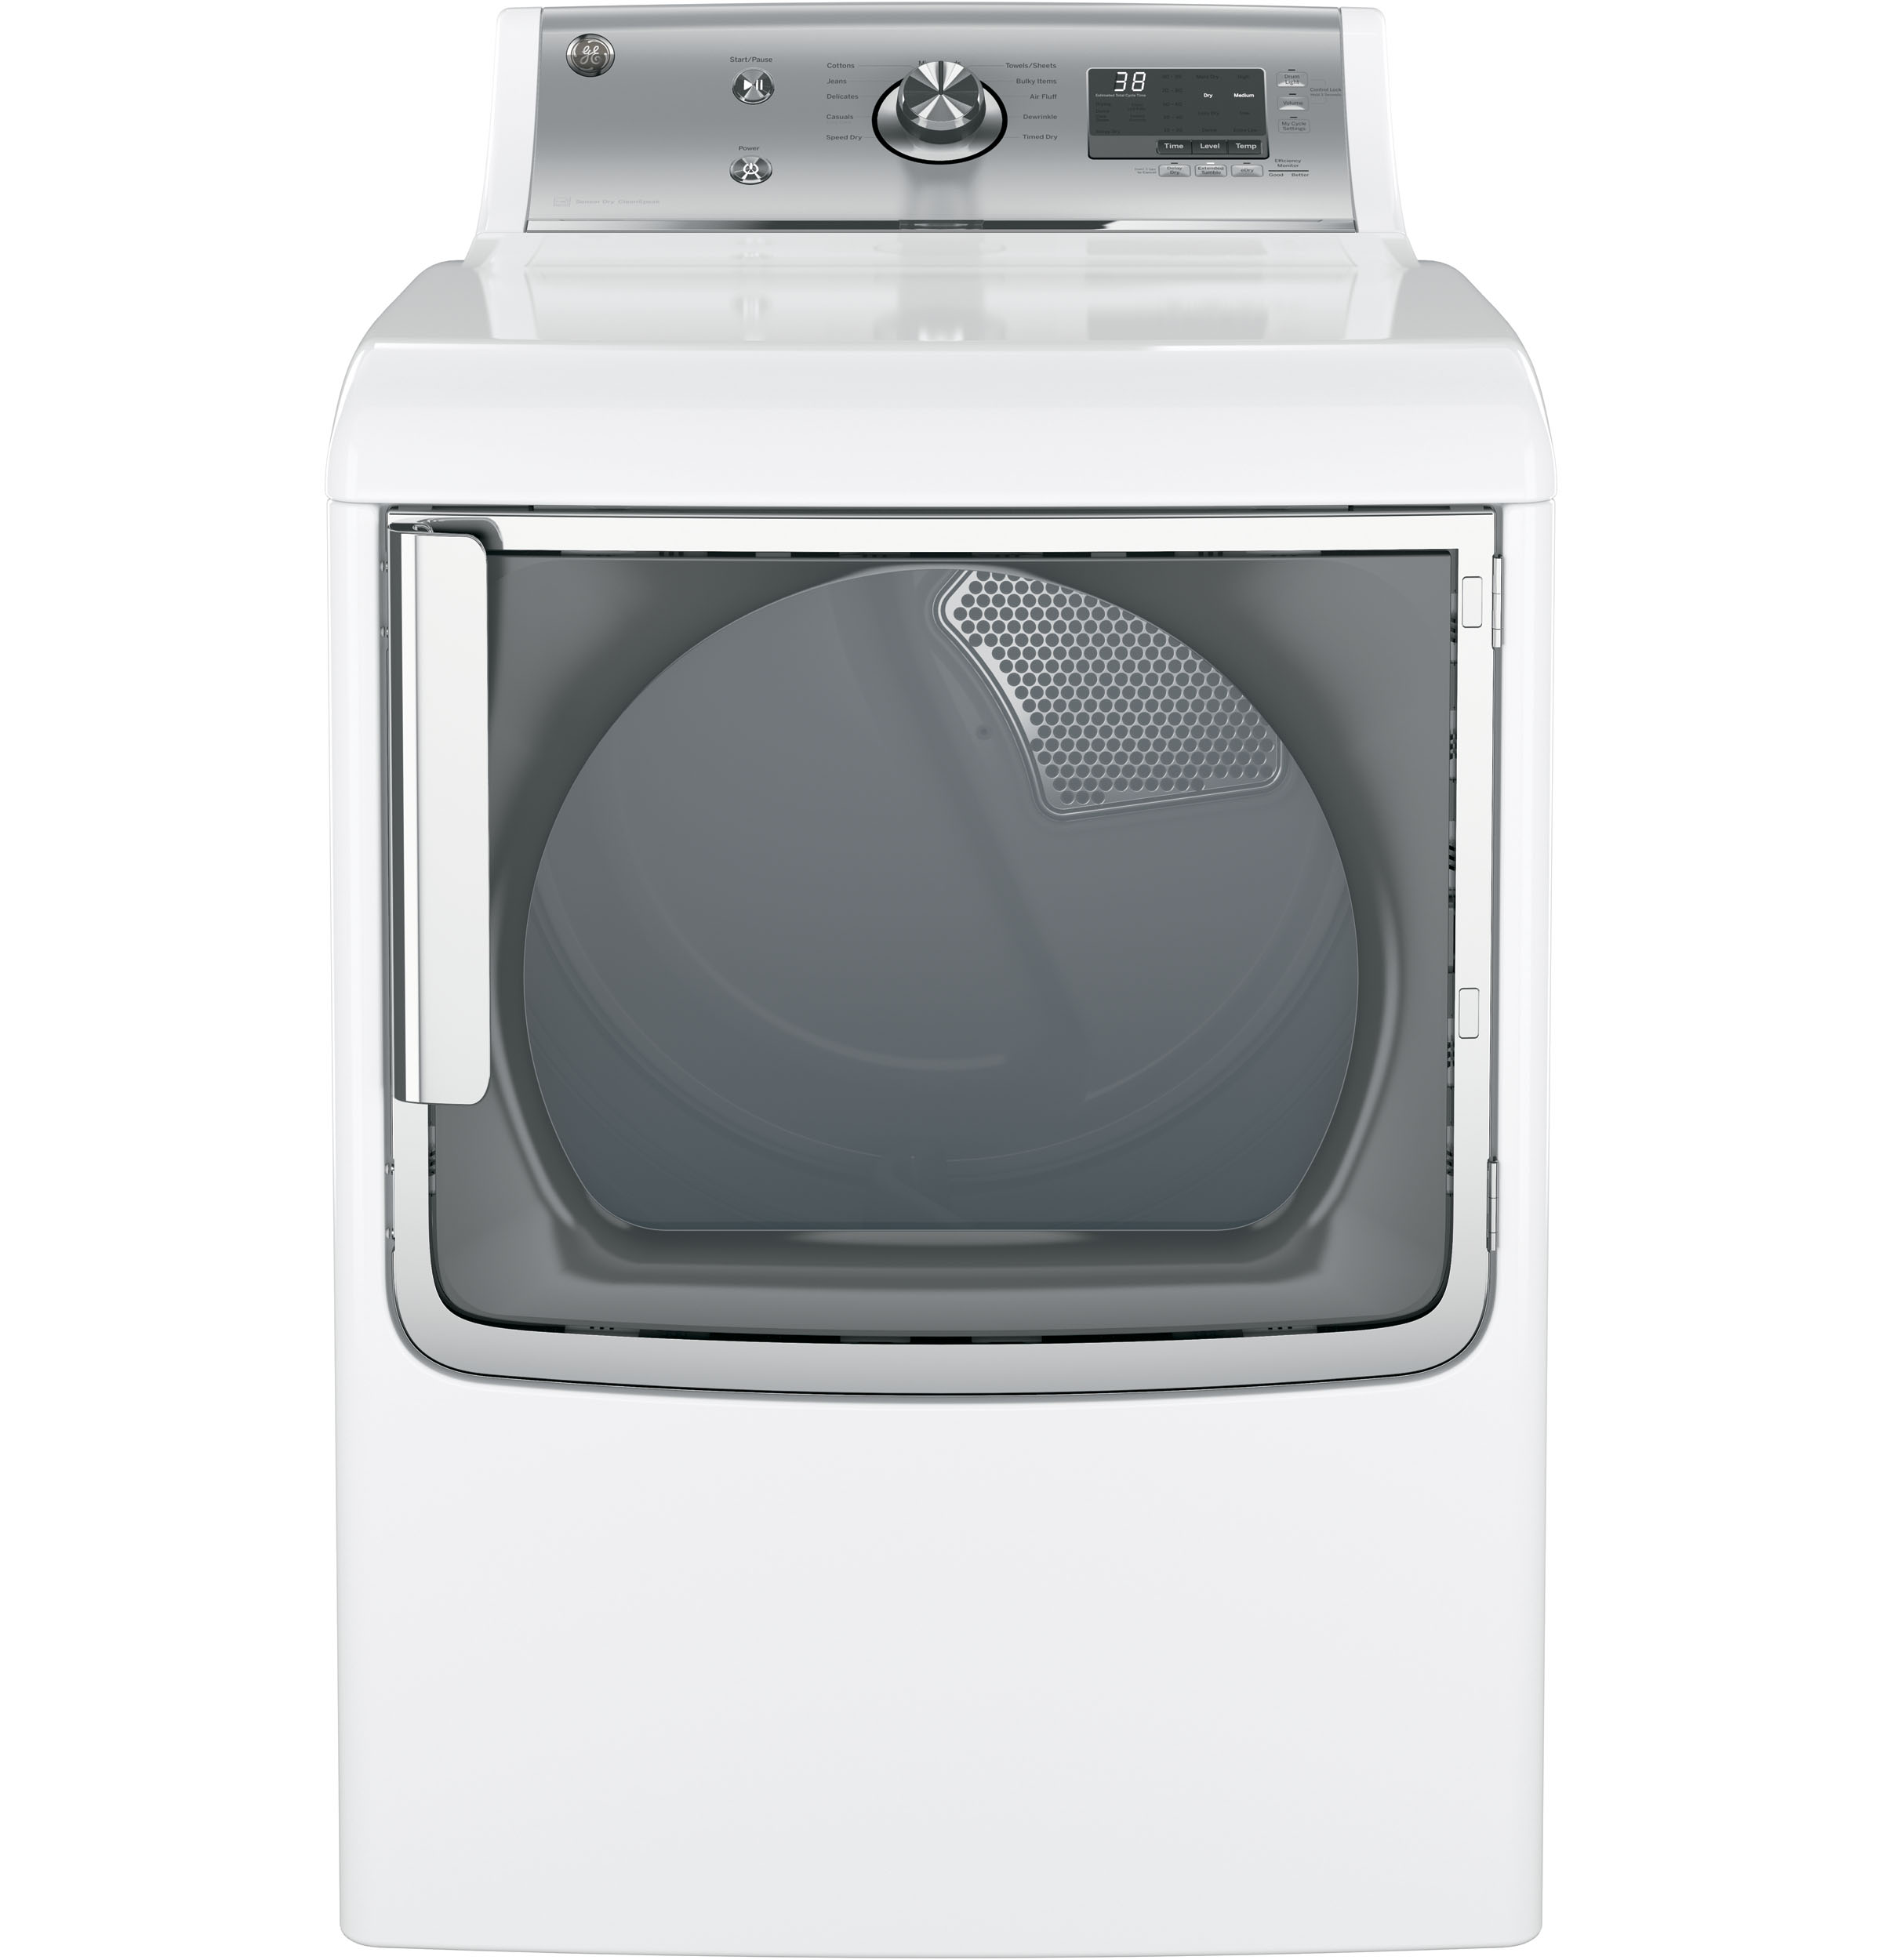 GE® 7.8 cu. ft. capacity aluminized alloy drum electric dryer